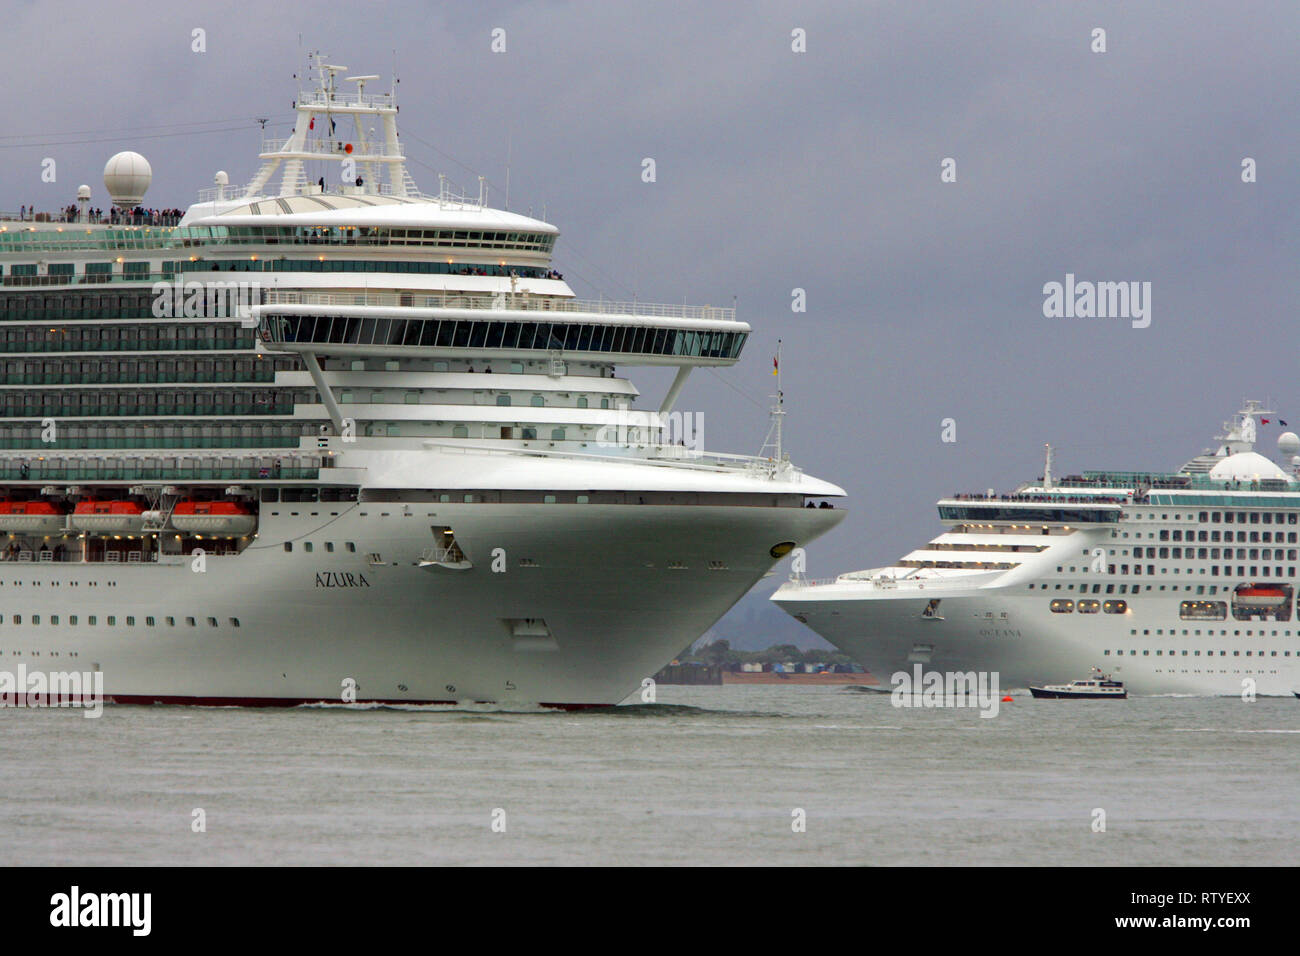 Pollution, Azura, Cruise Liner, The Solent, Cowes, isle of Wight, England, UK, - Stock Image